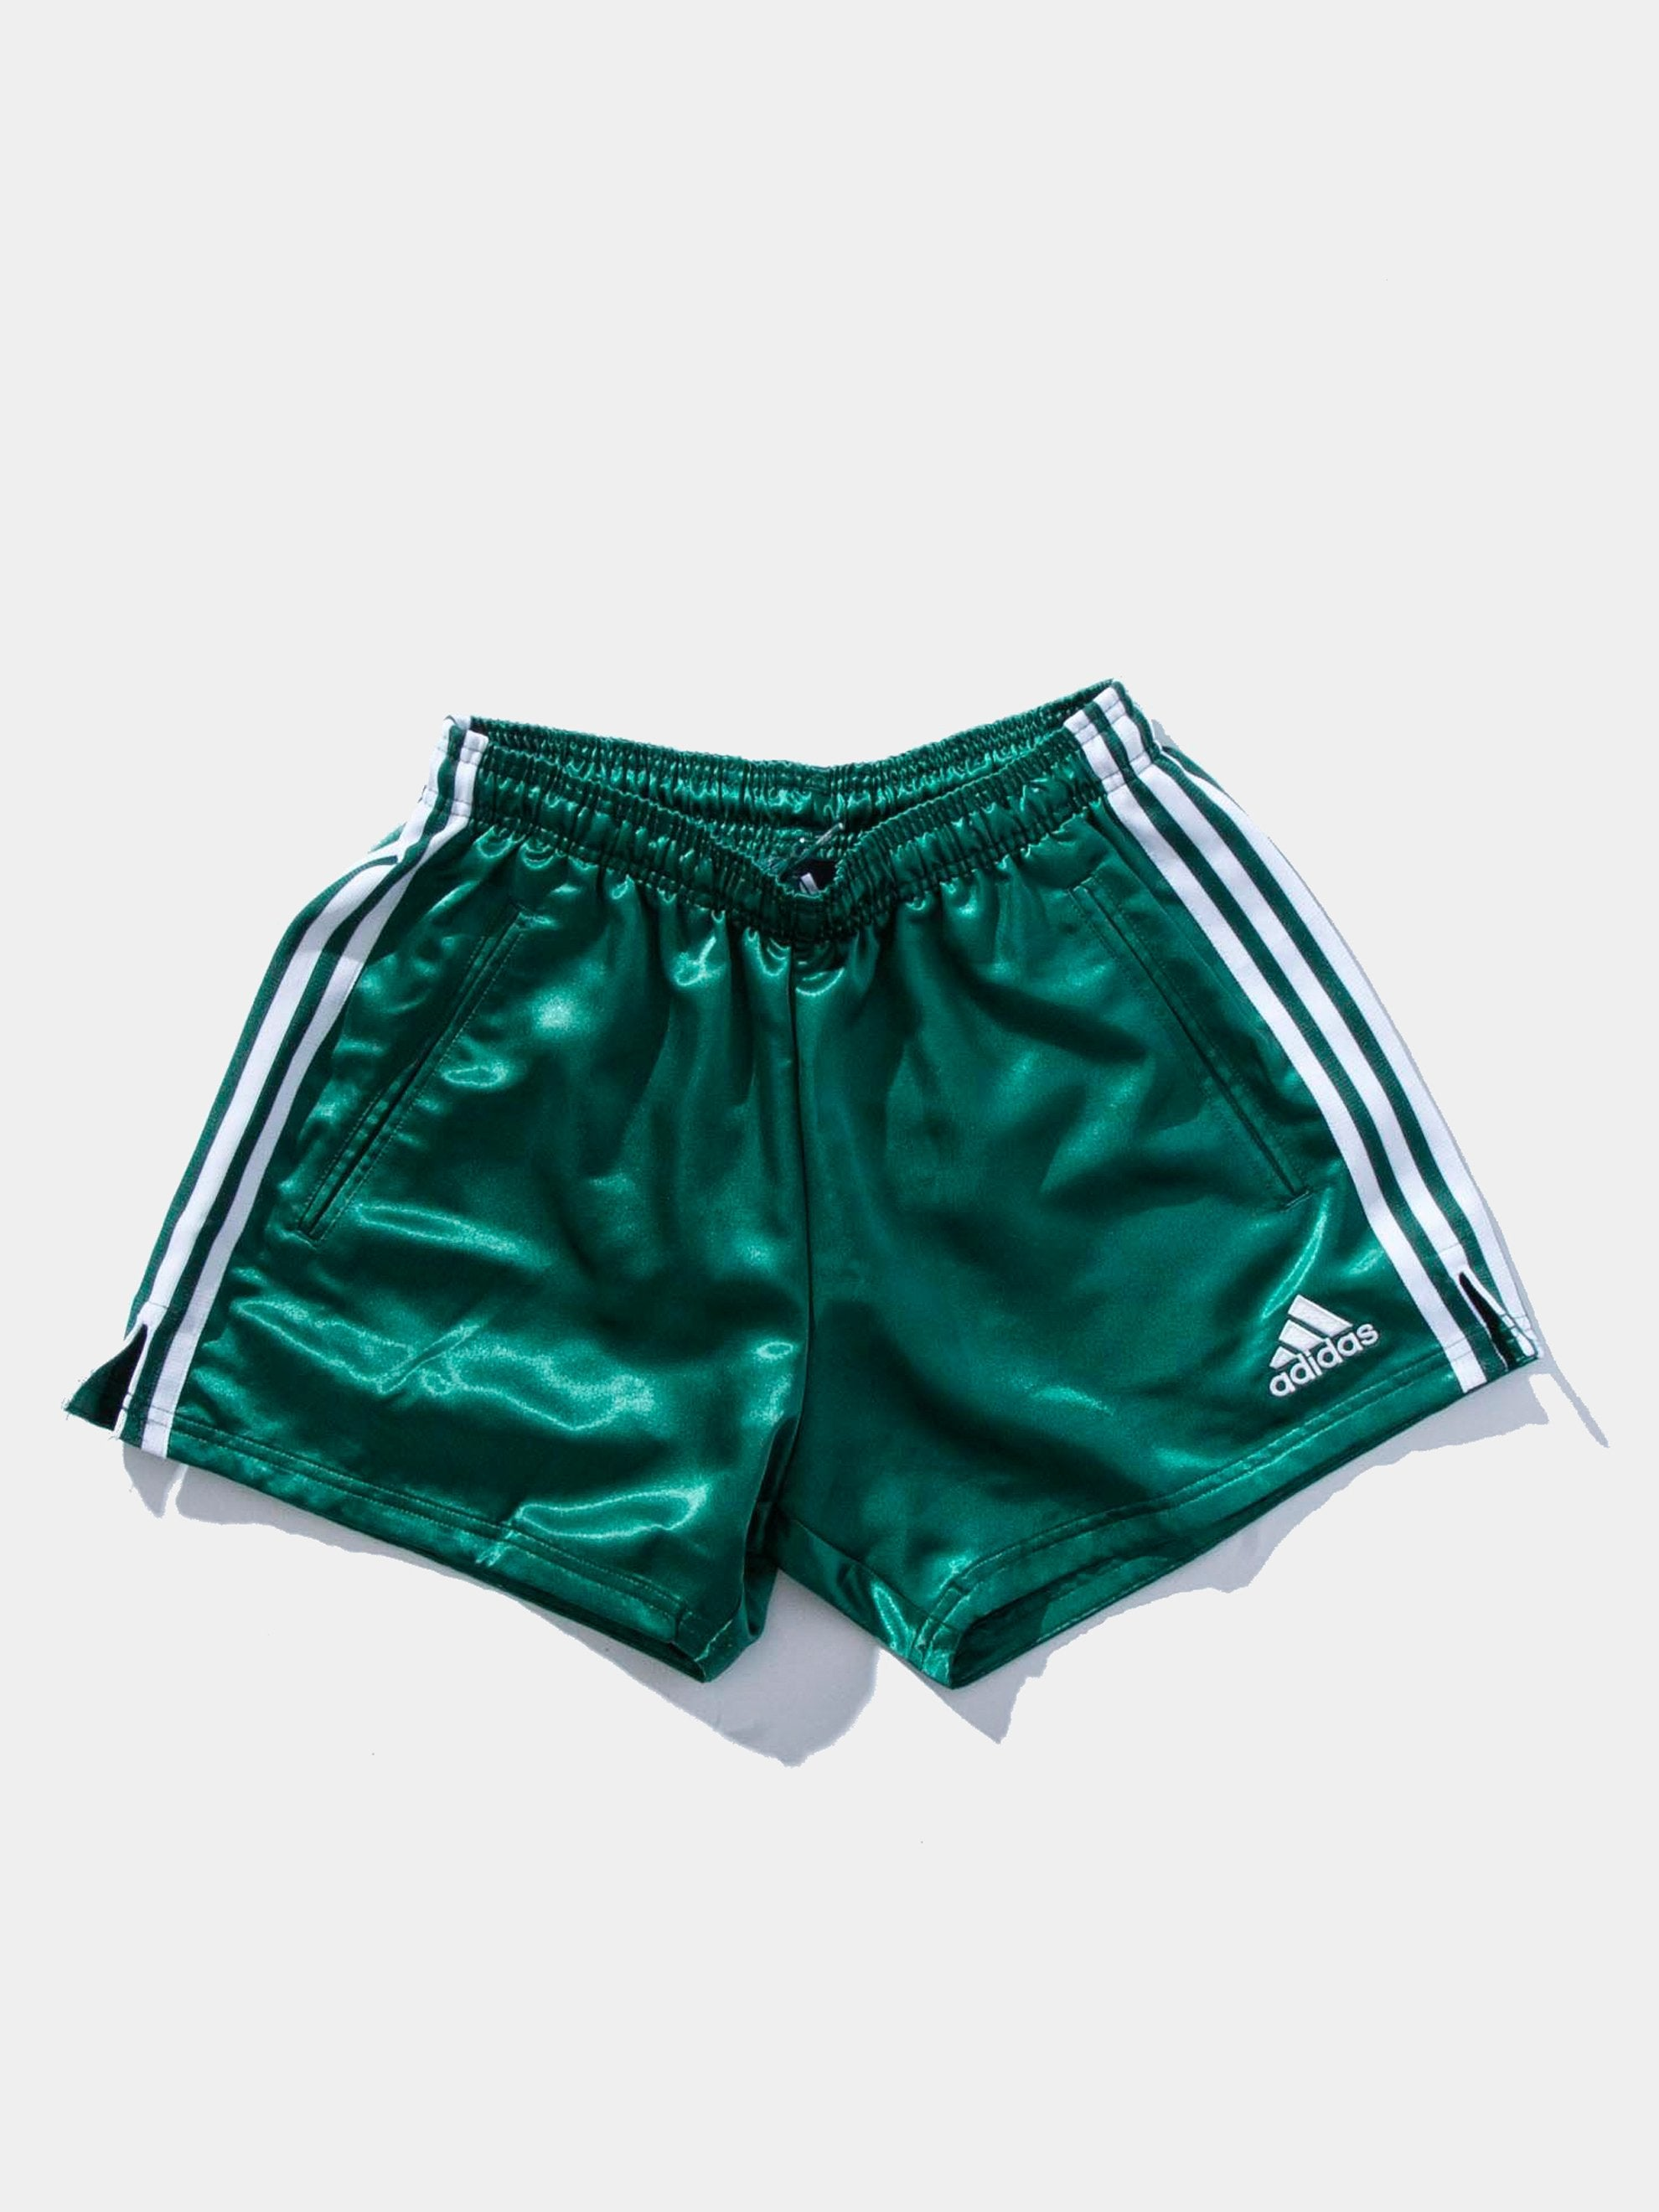 Forest Green Adidas Soccer Shorts 1